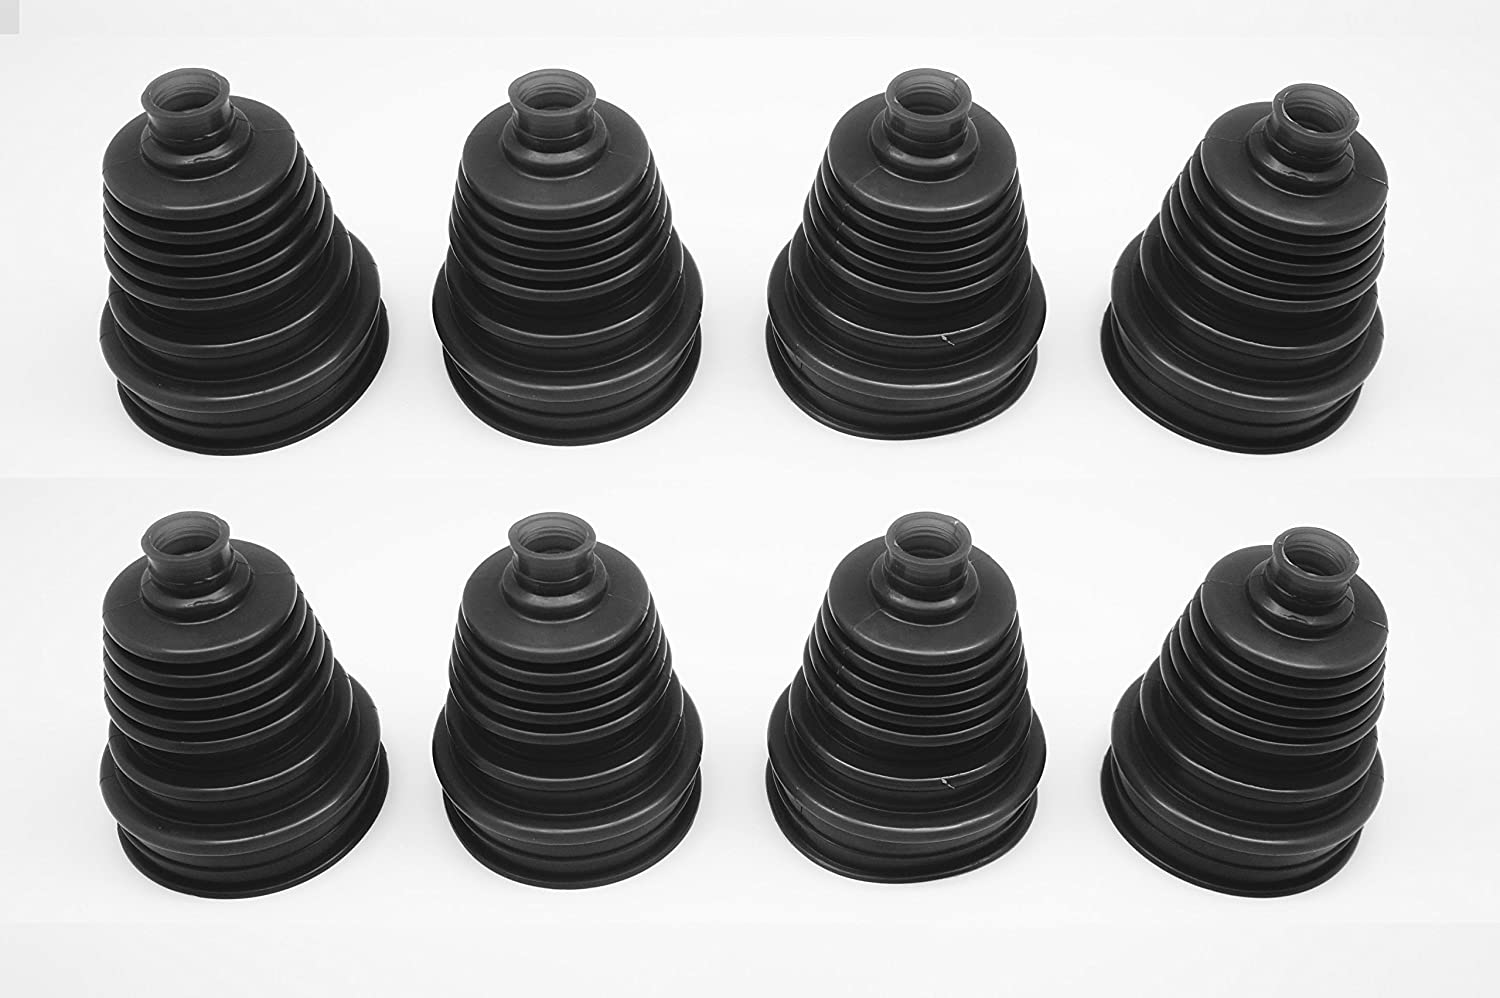 Black Autobahn88 Universal Silicone Constant Velocity CV Joint Boot Replacement Kit with Zip Ties Pack of 8 Pieces